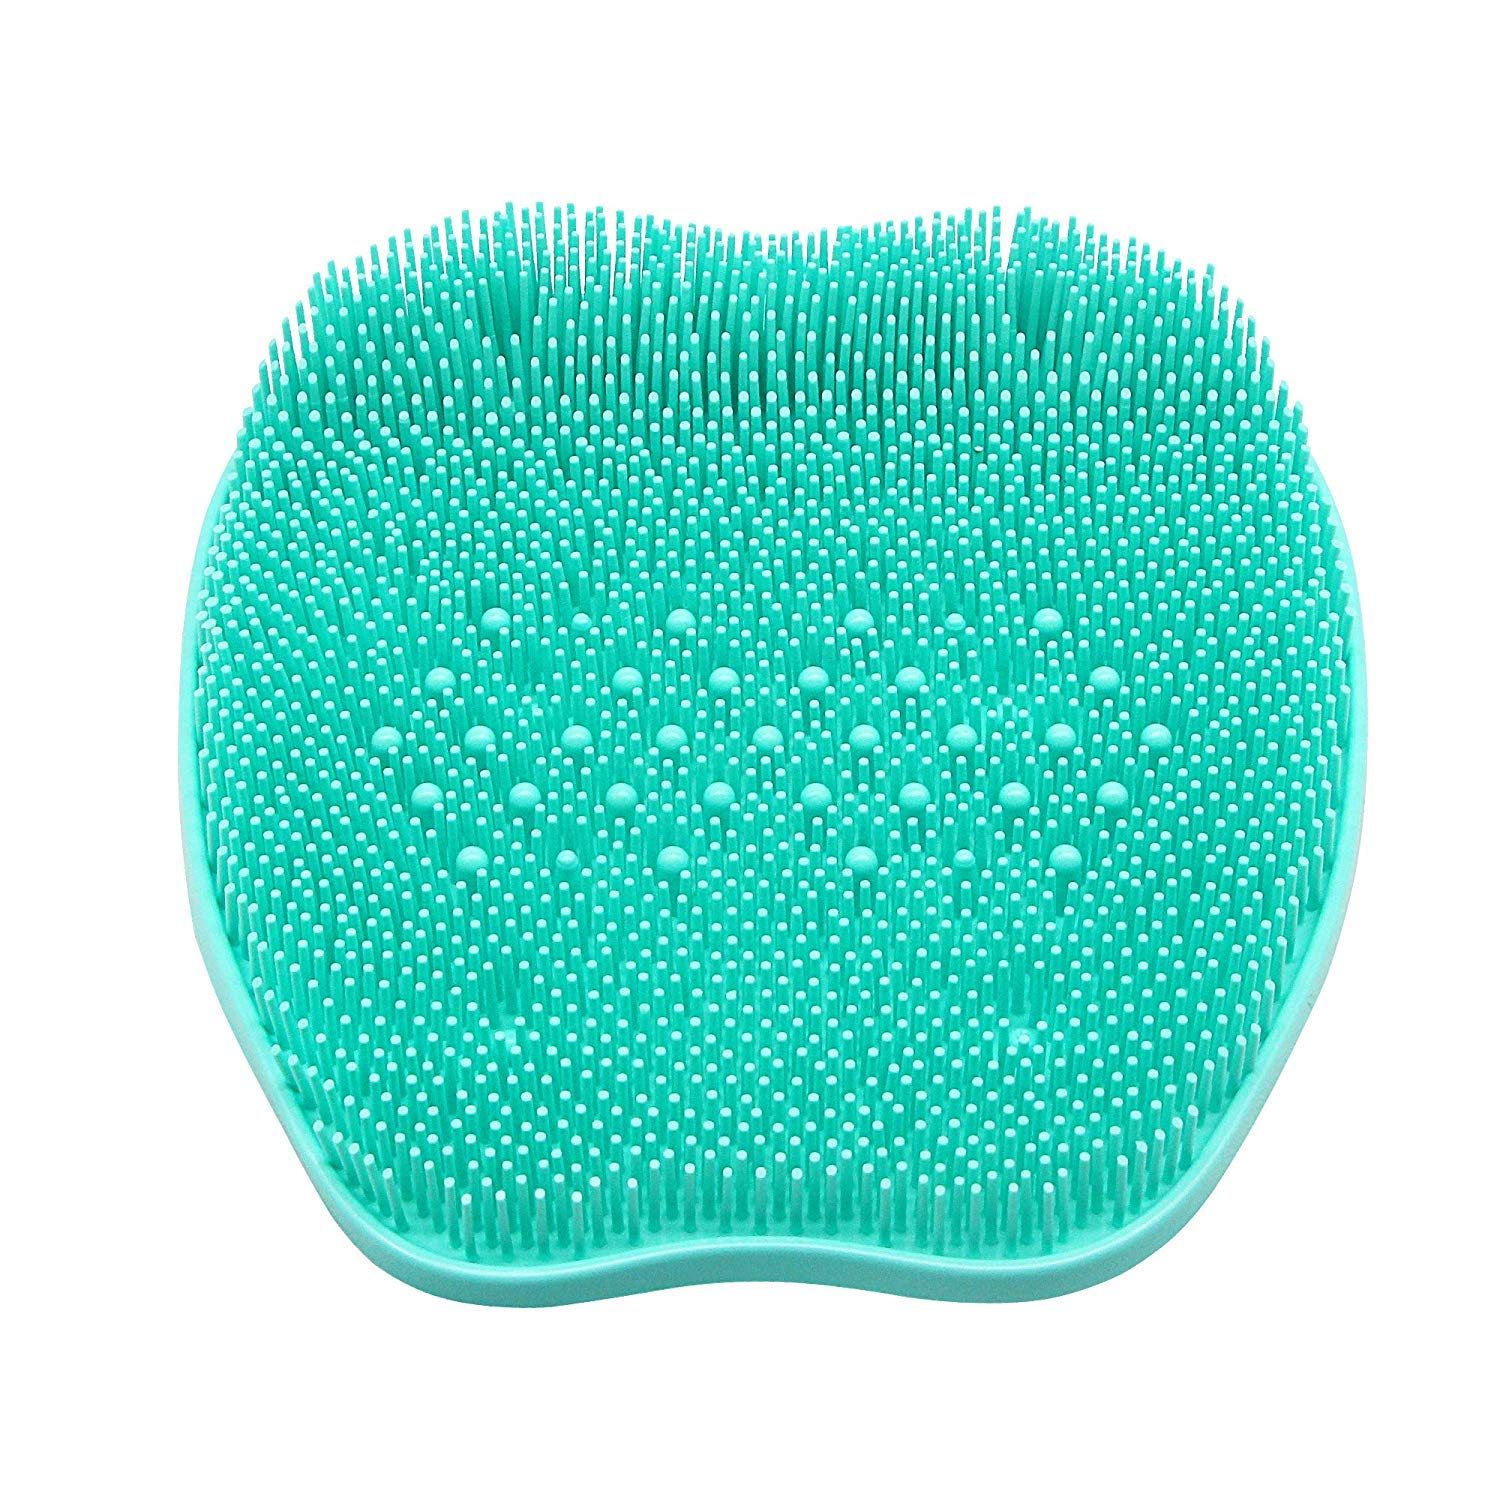 BeHomeArmor Foot Cleaning Scrubbers for Shower – Rubber Massager Mat for Sole of the Foot – Improve Foot Circulation